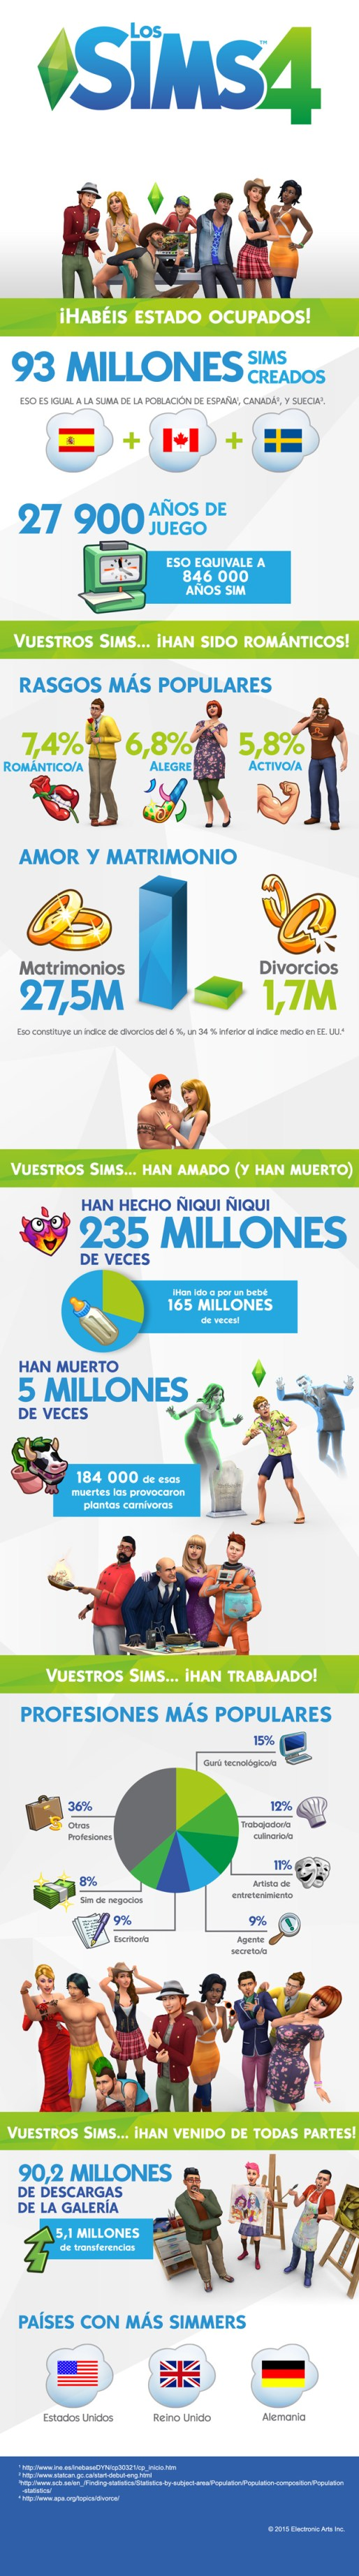 TS4_Anniversary_infographic_Final_ES